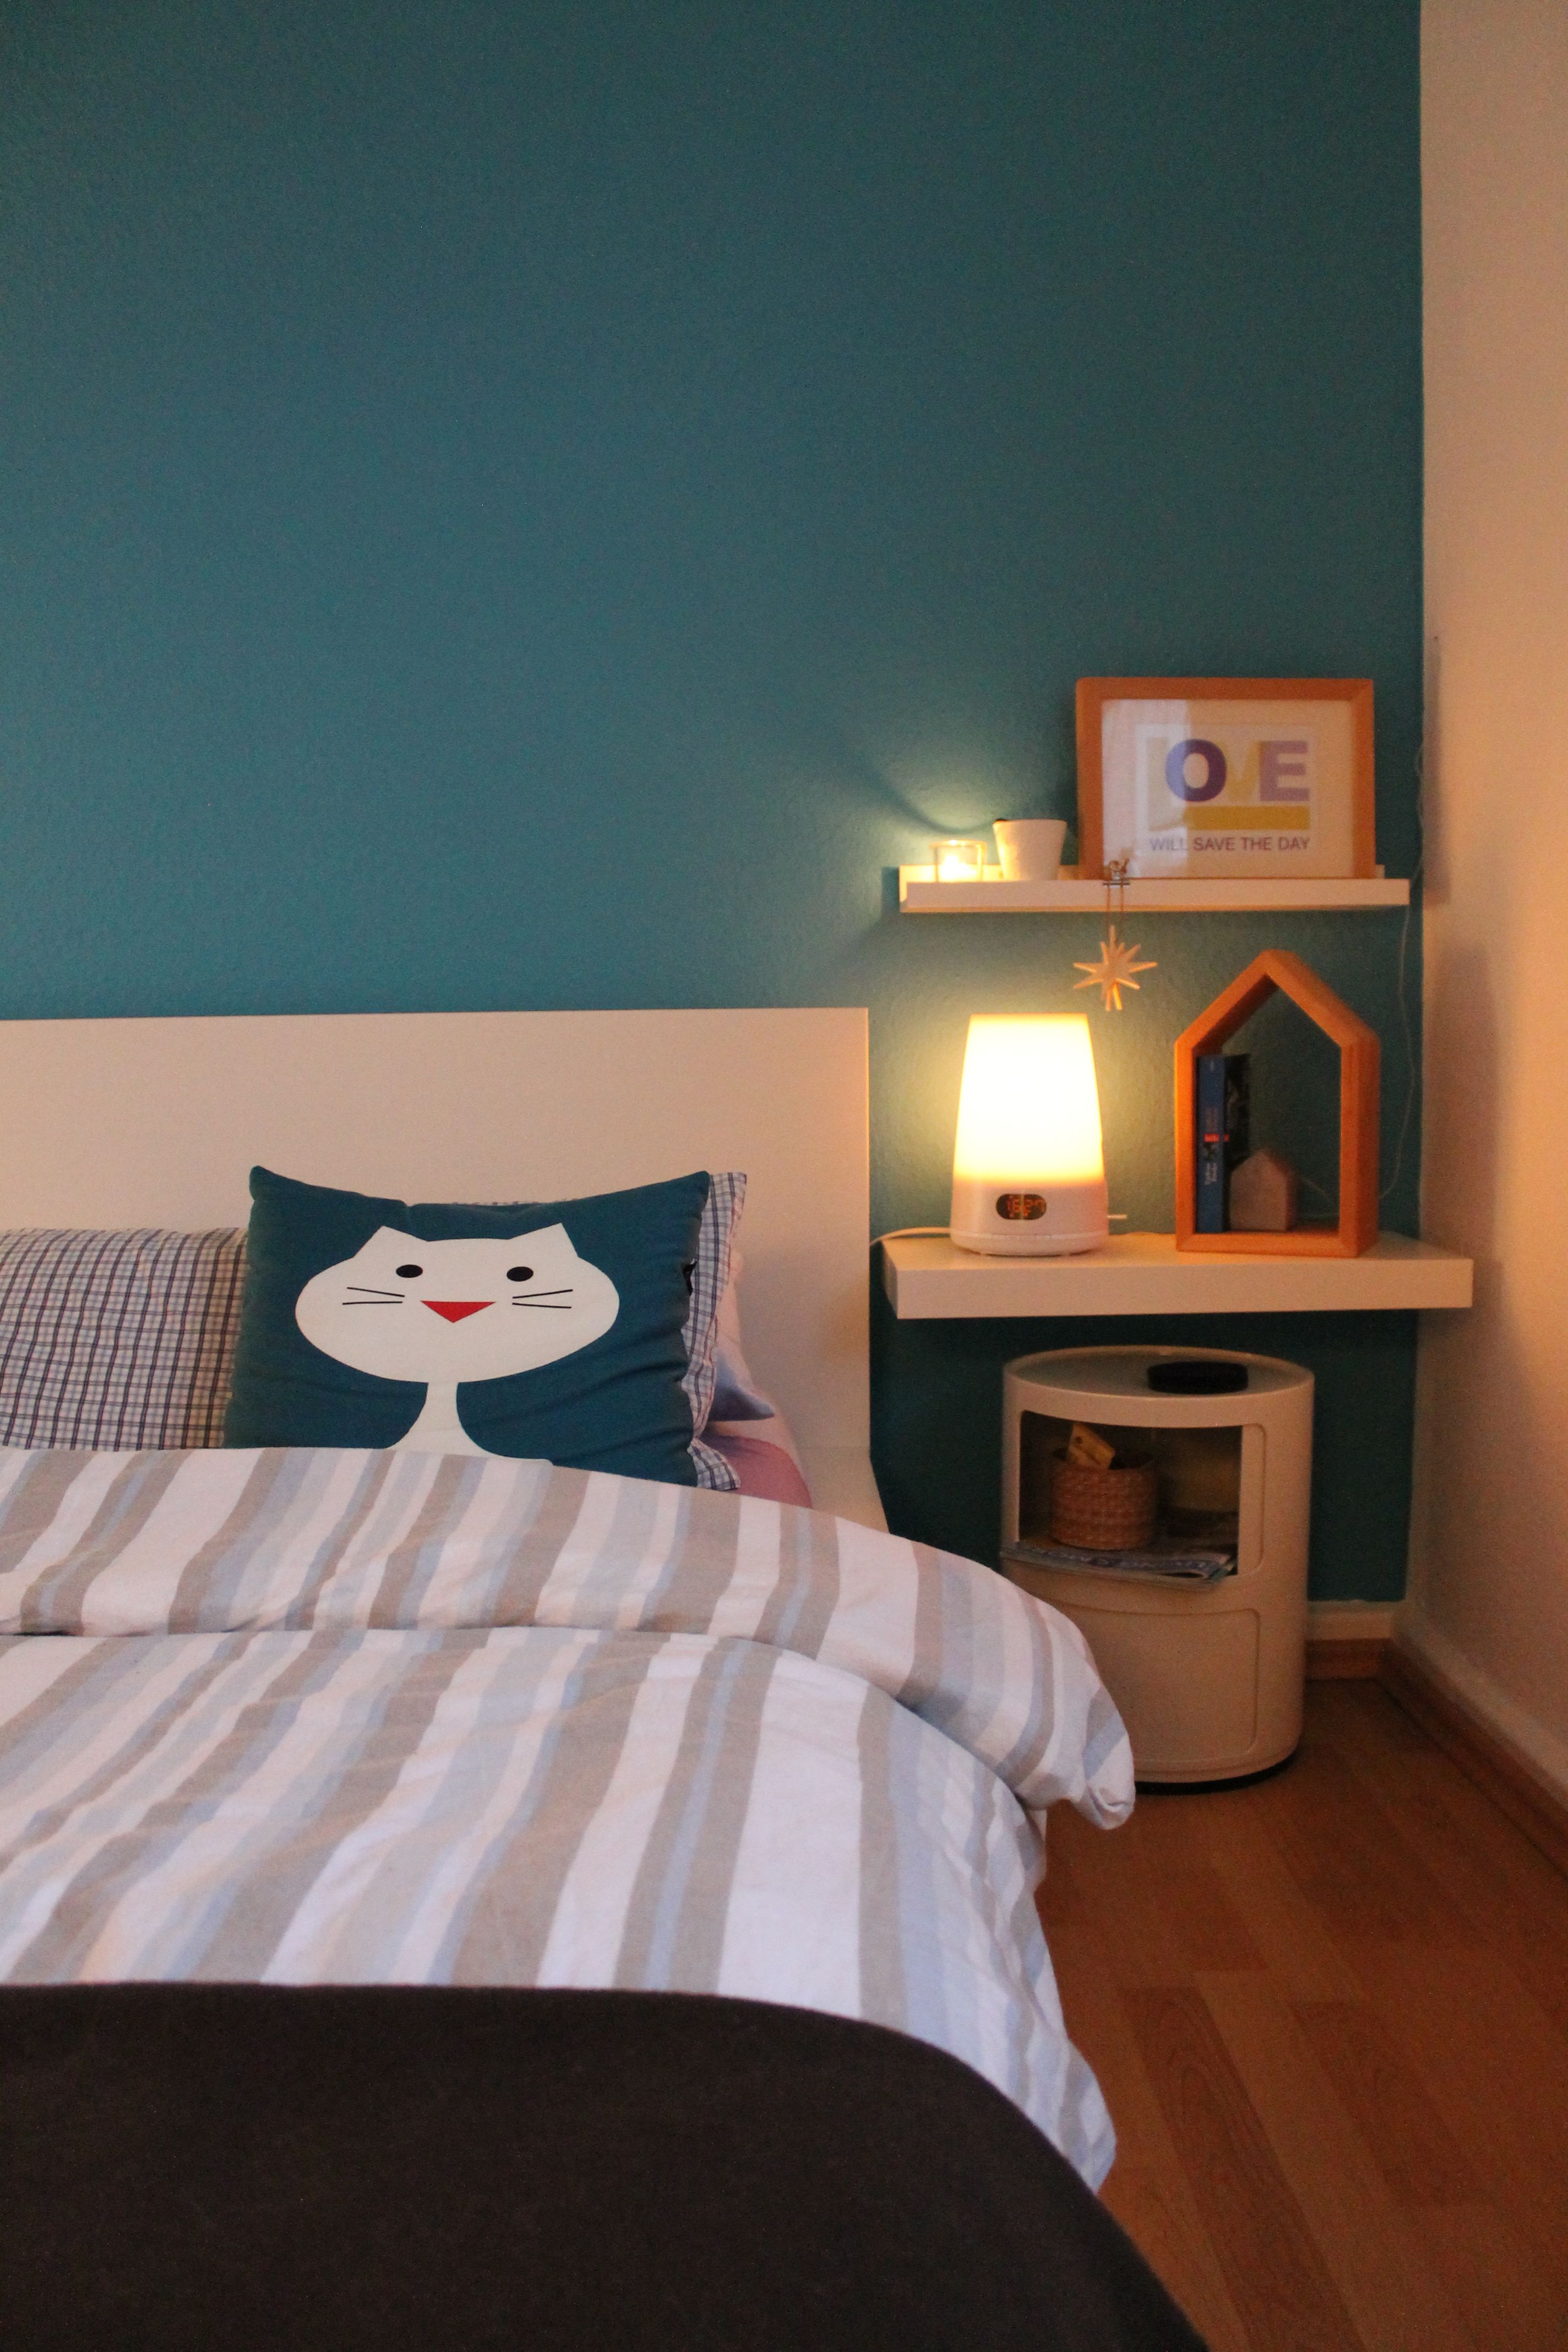 My New Bed Side Blue Wall Ikea Malm White Iittala Kivi Clear Philips Clock Componibili 2 White Wohnen Wohn Schlafzimmer Zimmer